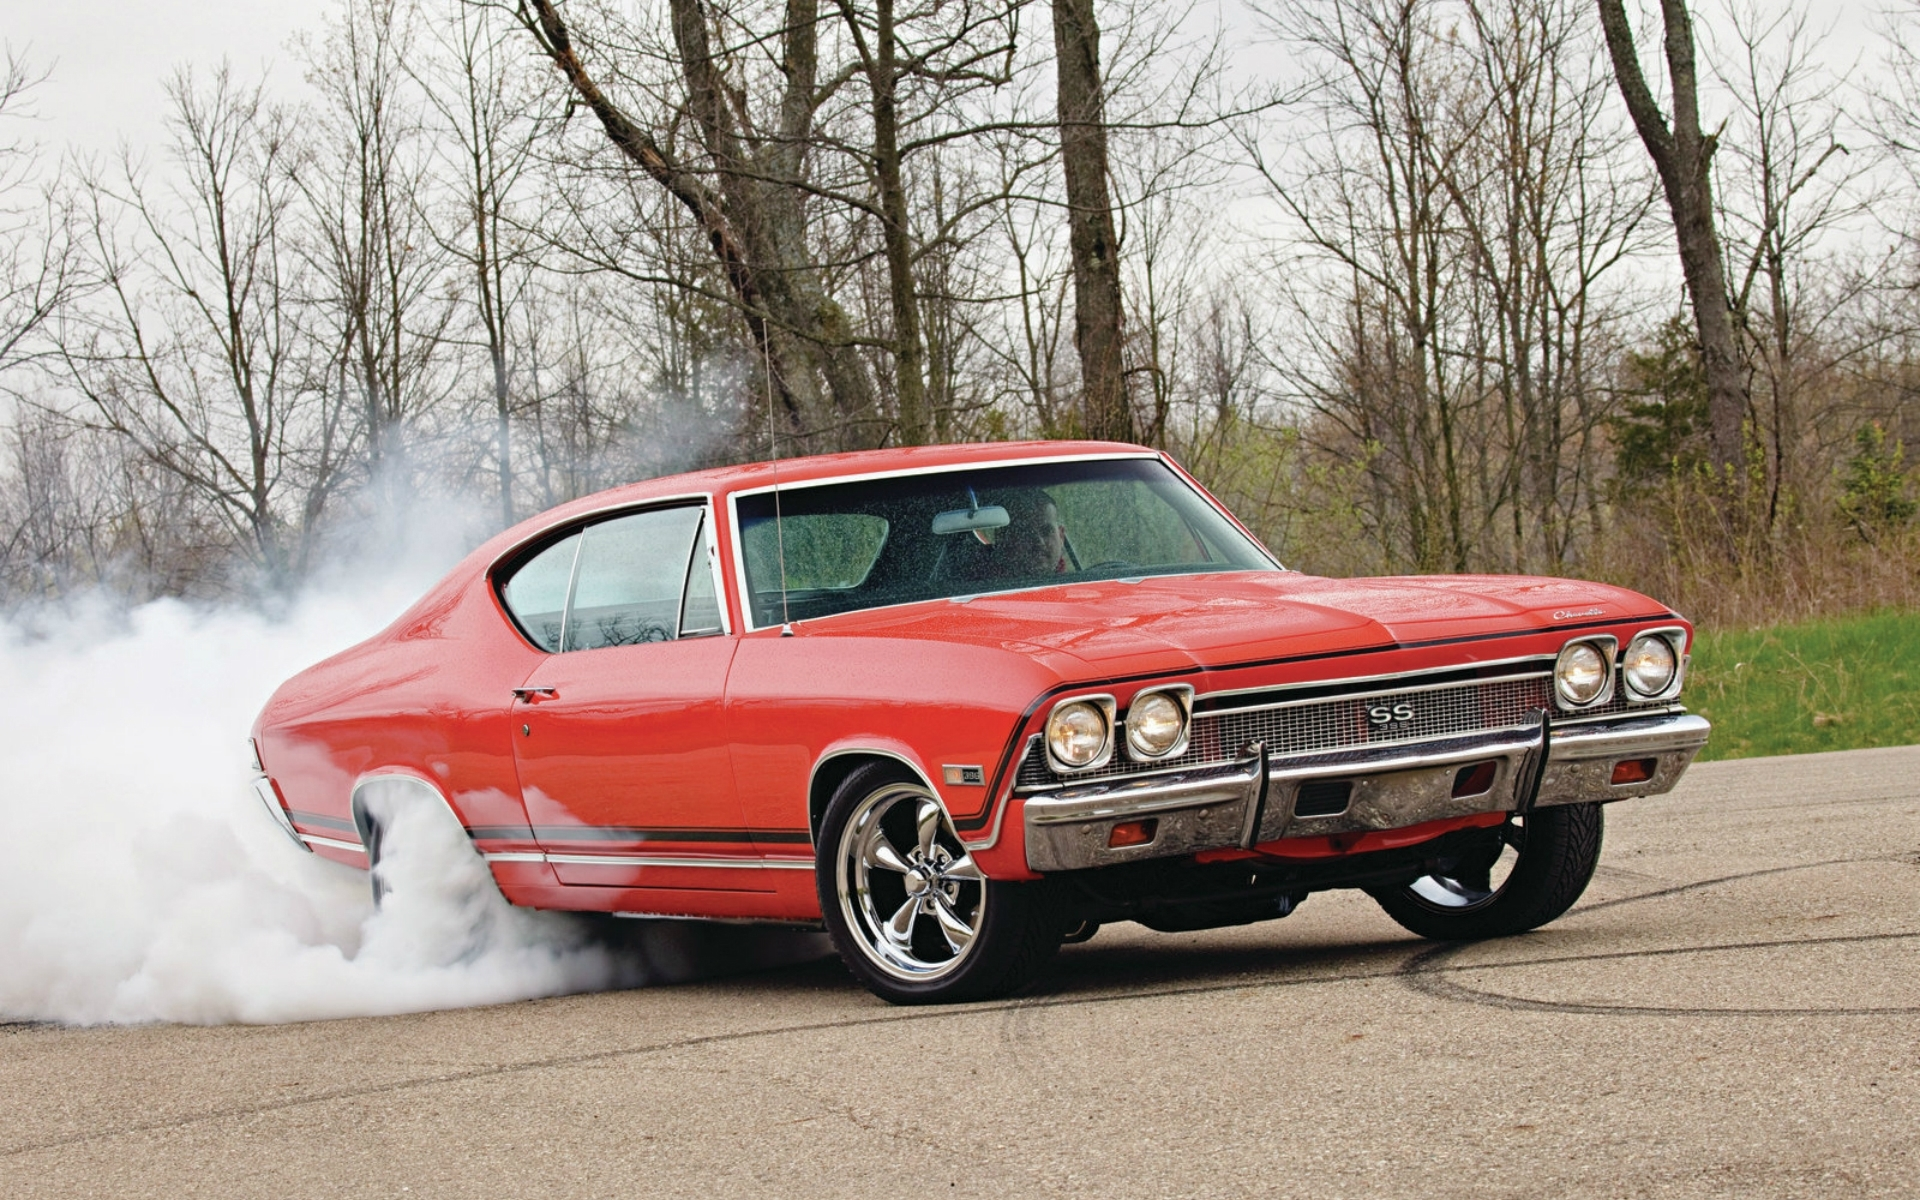 Chevrolet Chevelle Ss 1968 Burnout Roads Muscle Cars Hot Rod Smoke